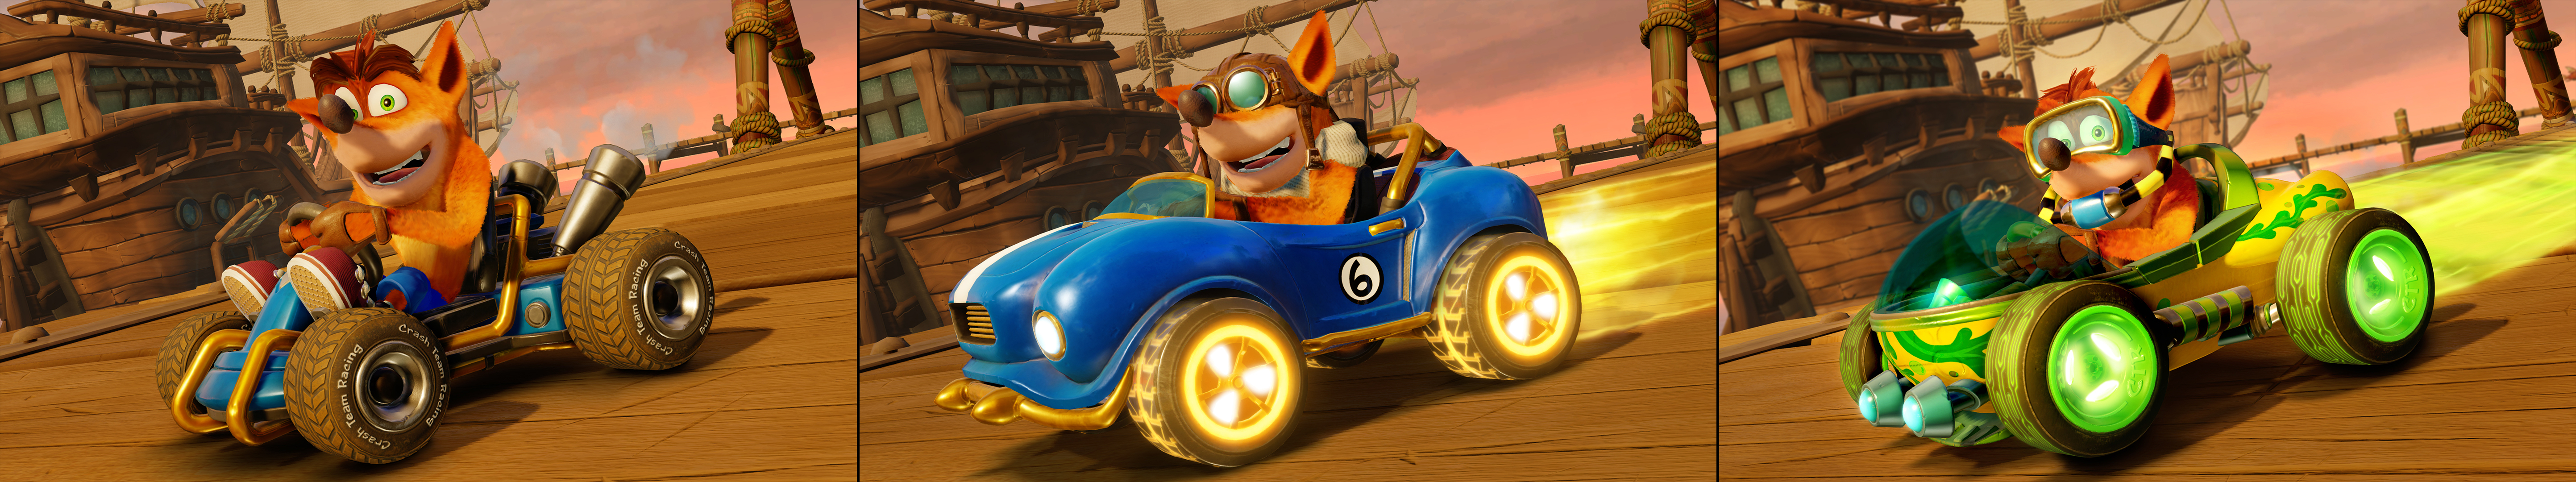 Crash Team Racing Nitro-Fueled Launches Today – It's Time to Get